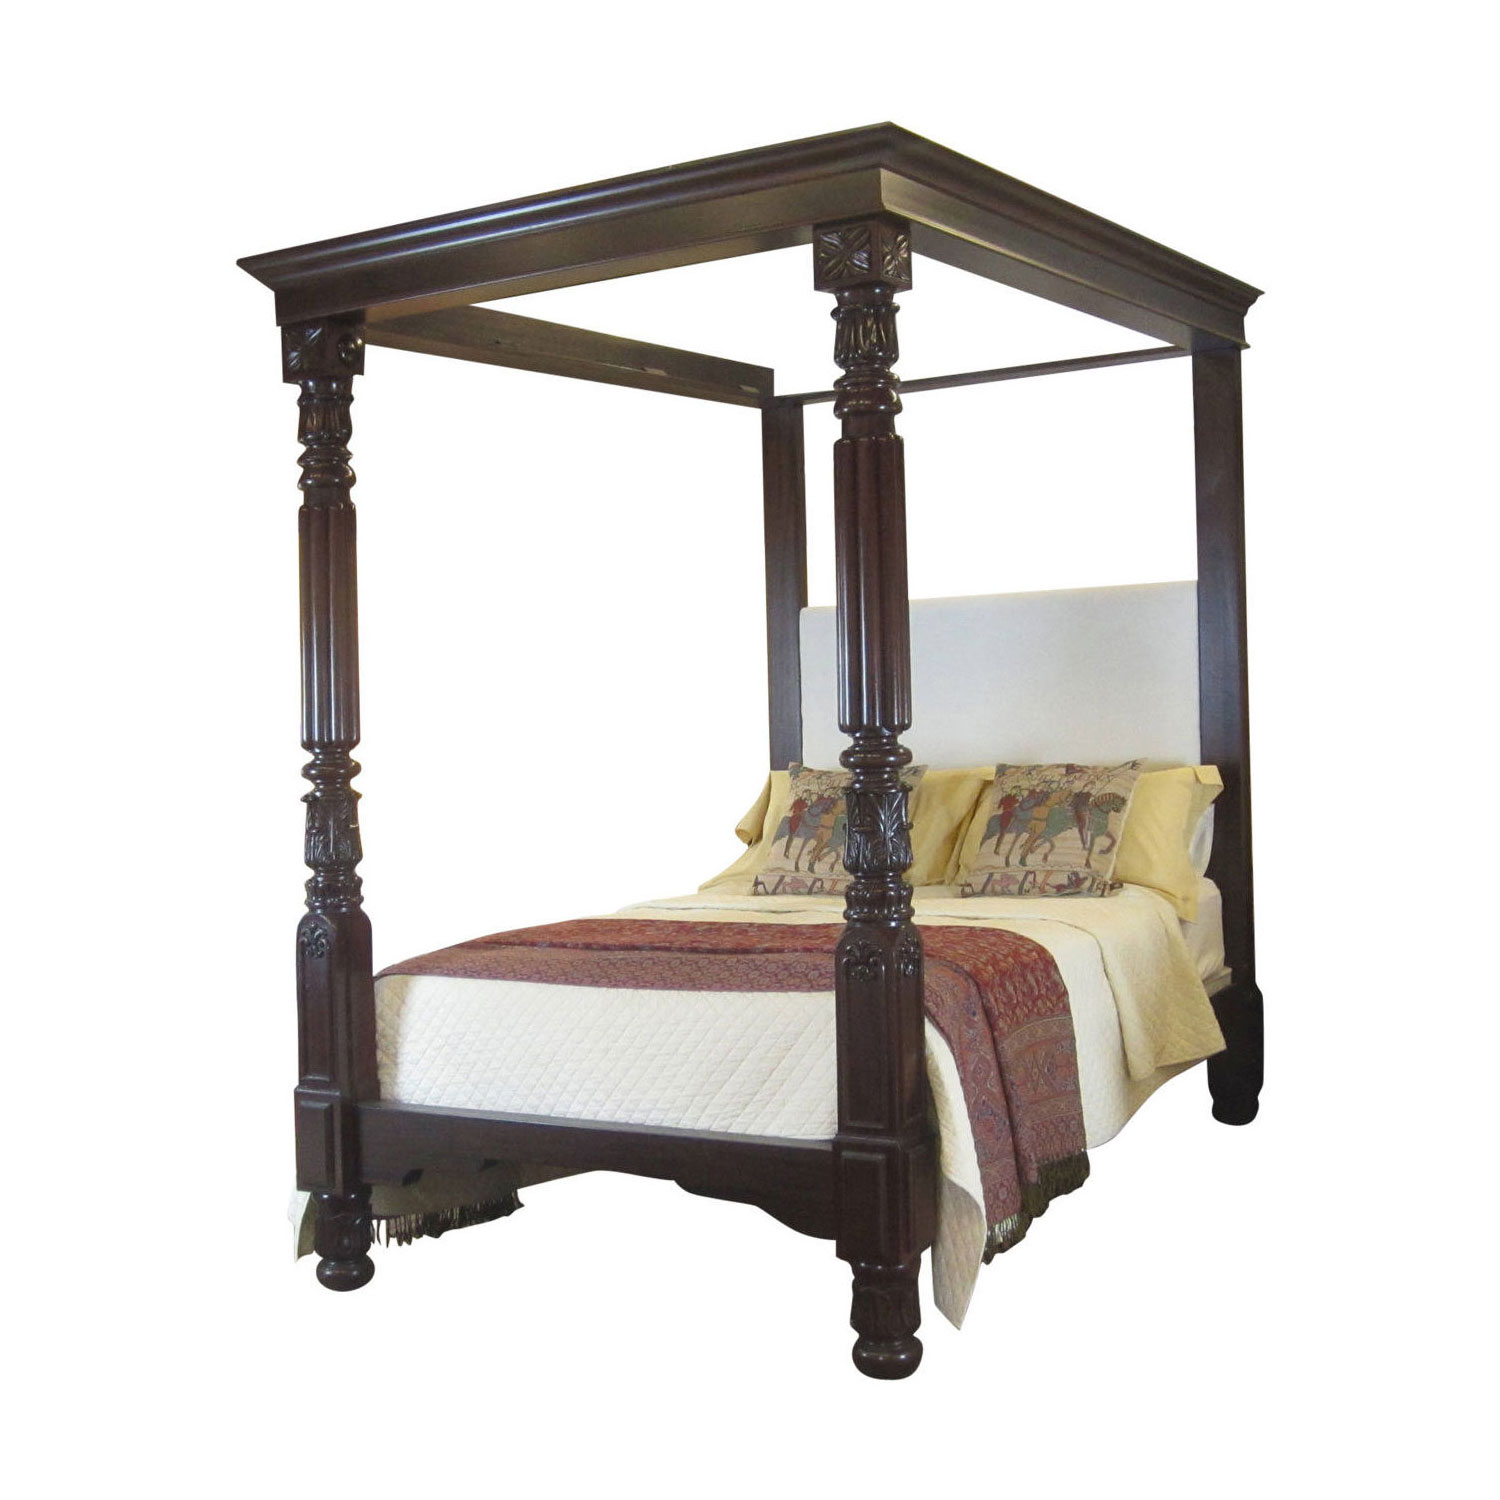 wooden four poster bed w4p3